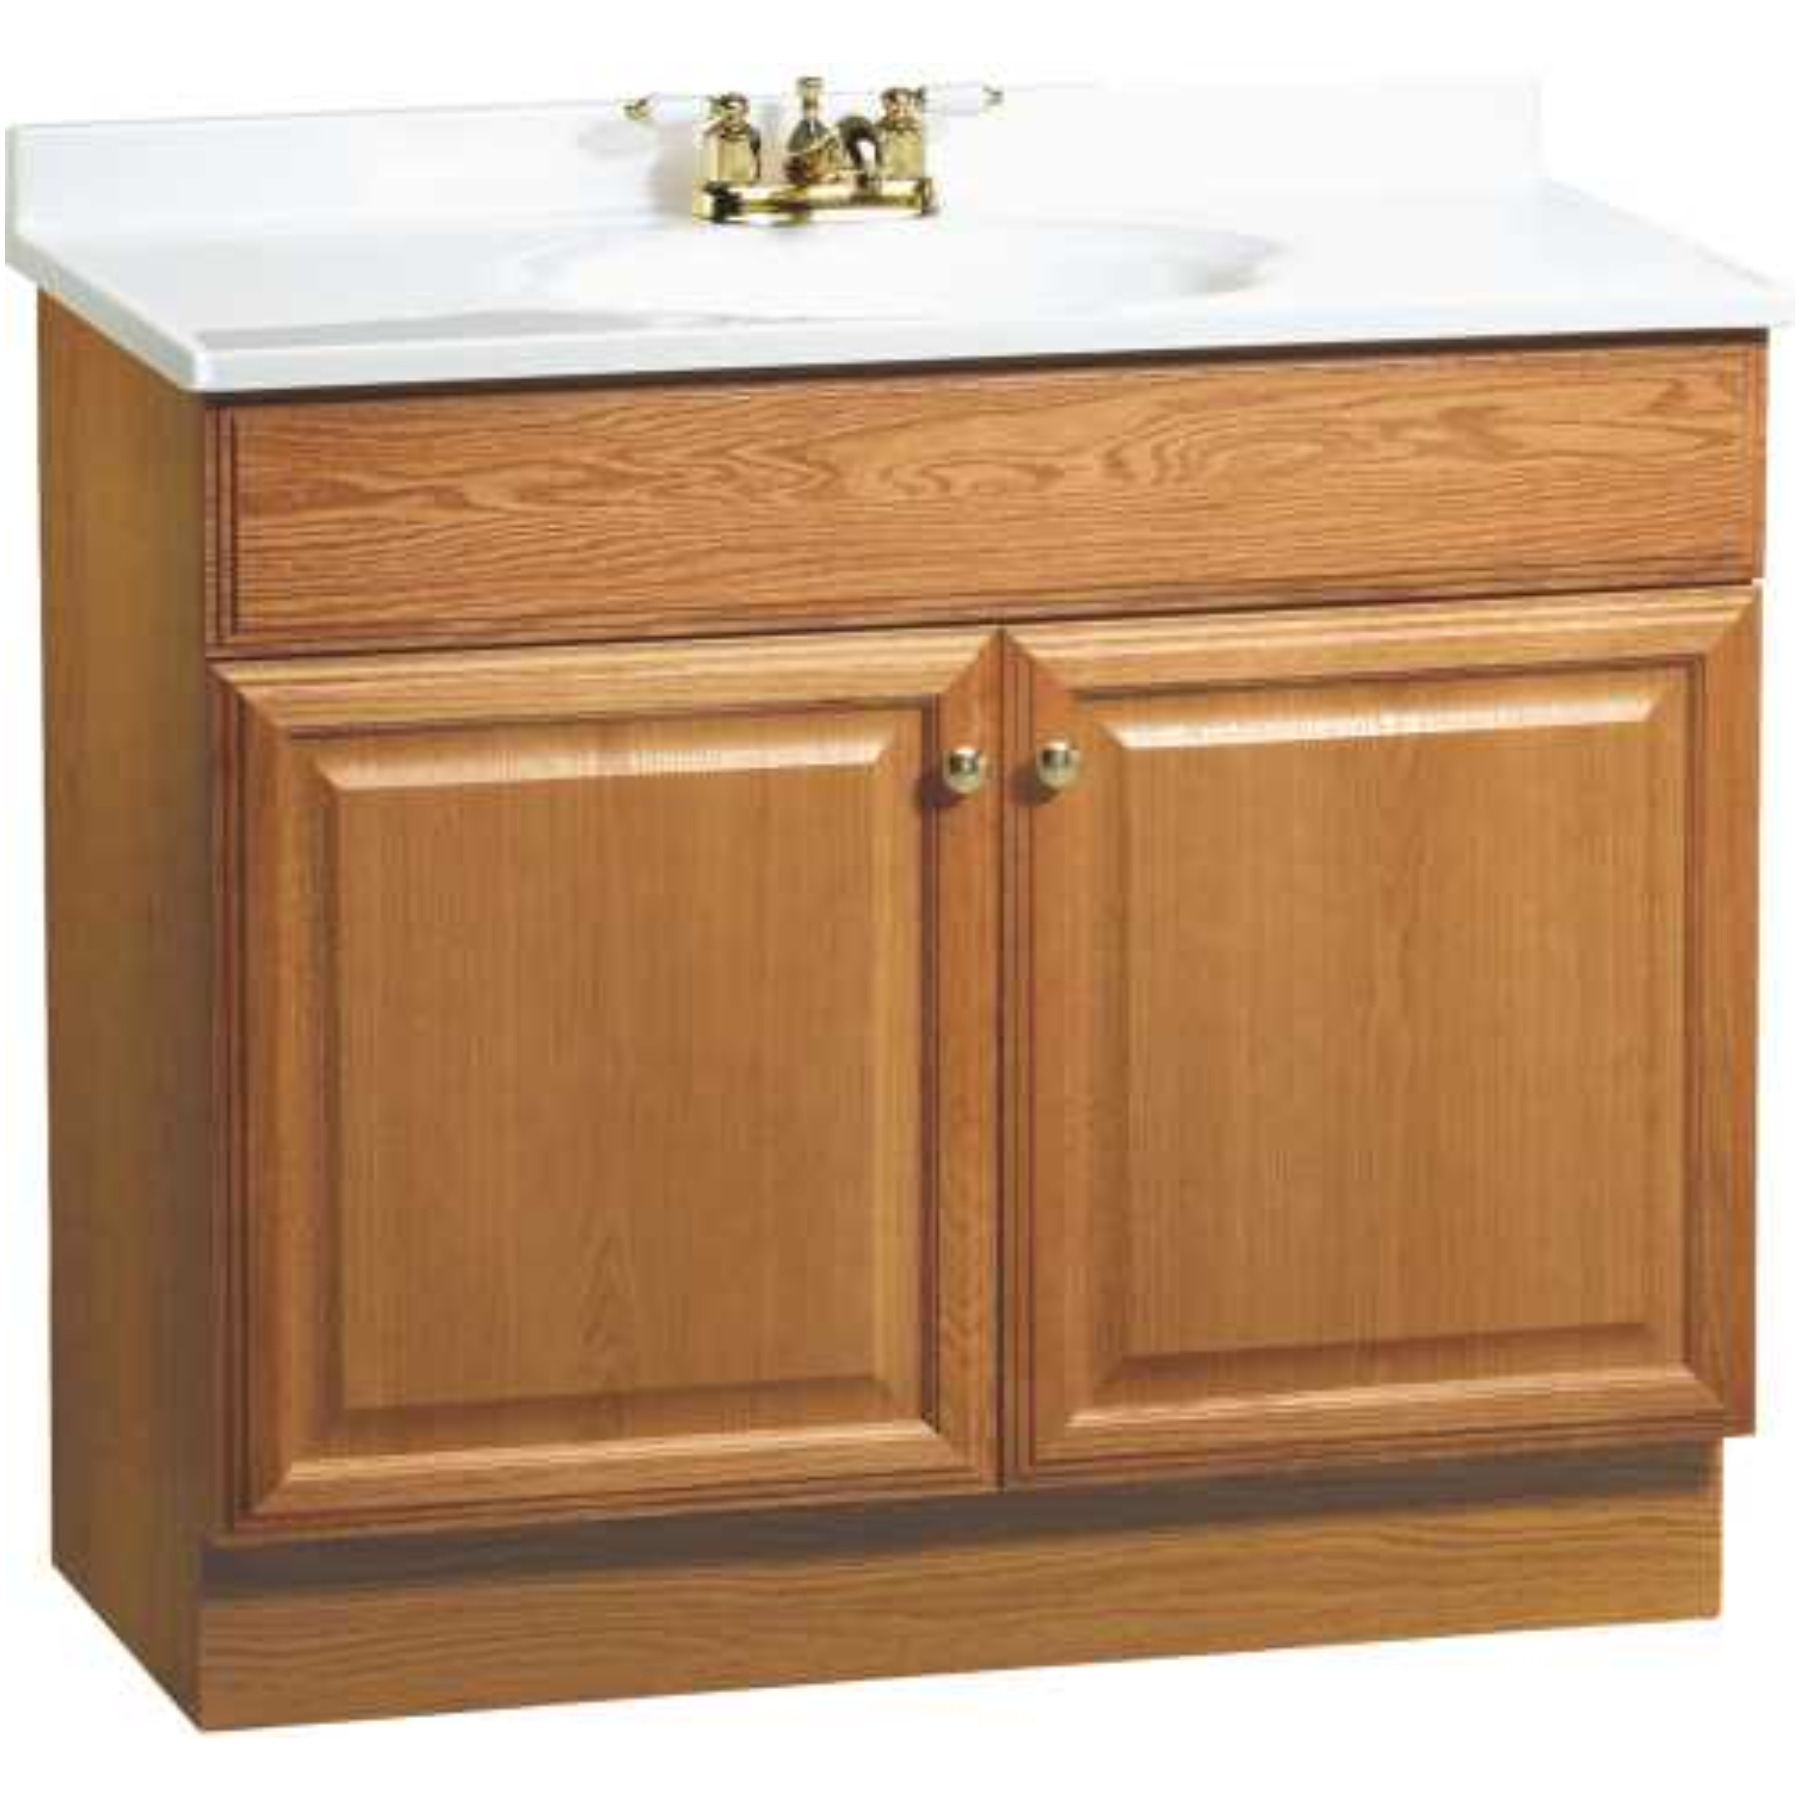 RSI HOME PRODUCTS RICHMOND BATHROOM VANITY CABINET WITH TOP, FULLY ASSEMBLED, 2 DOOR, OAK FINISH, 36 X 31X 18""